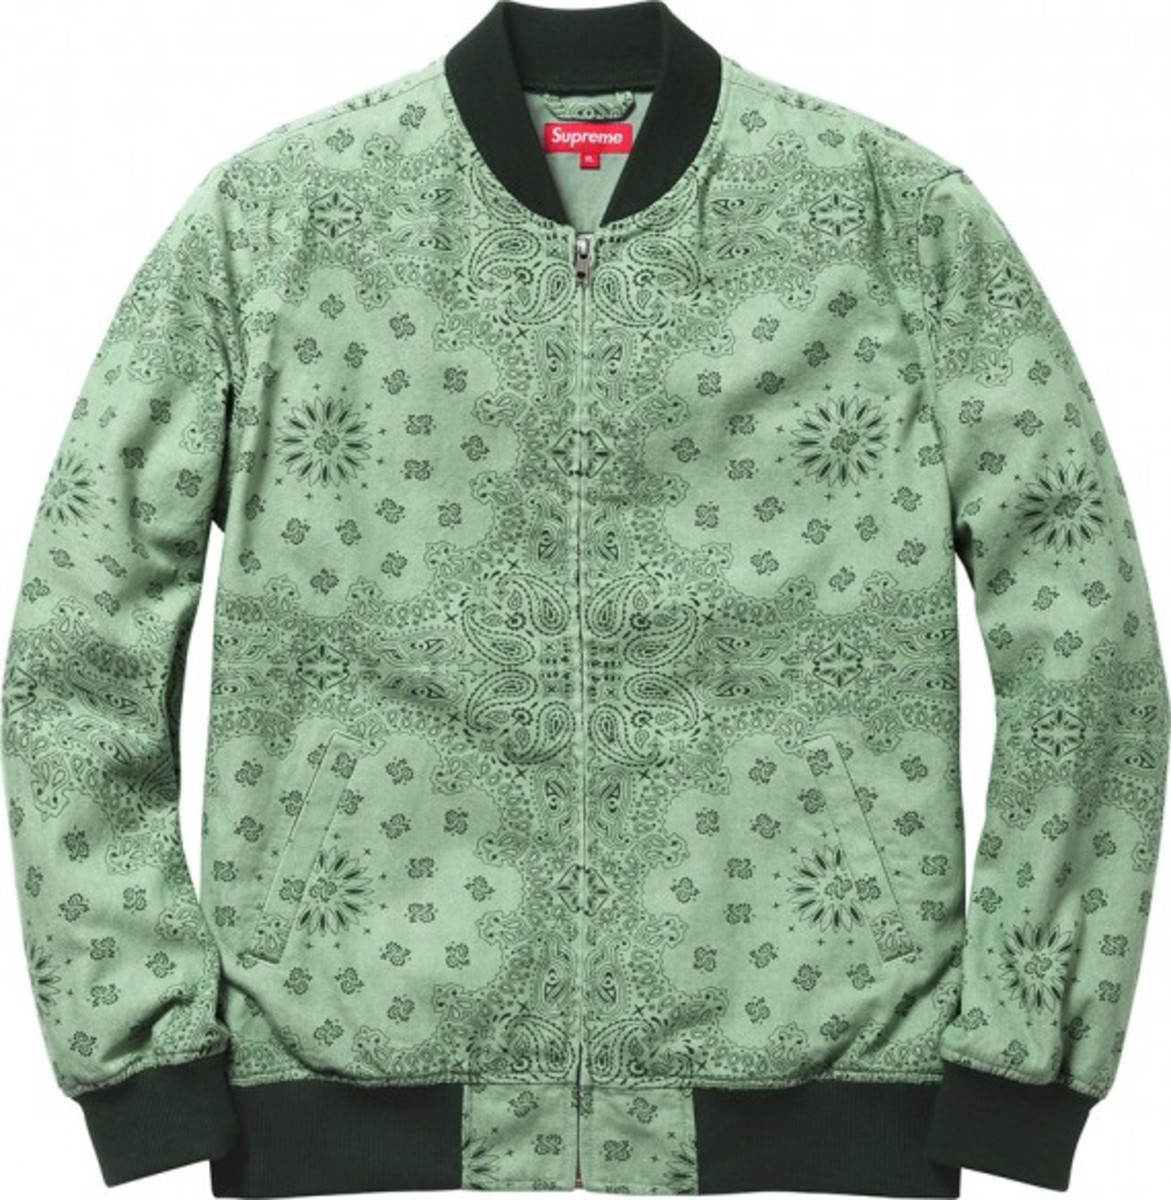 supreme-spring-summer-2013-outerwear-collection-52